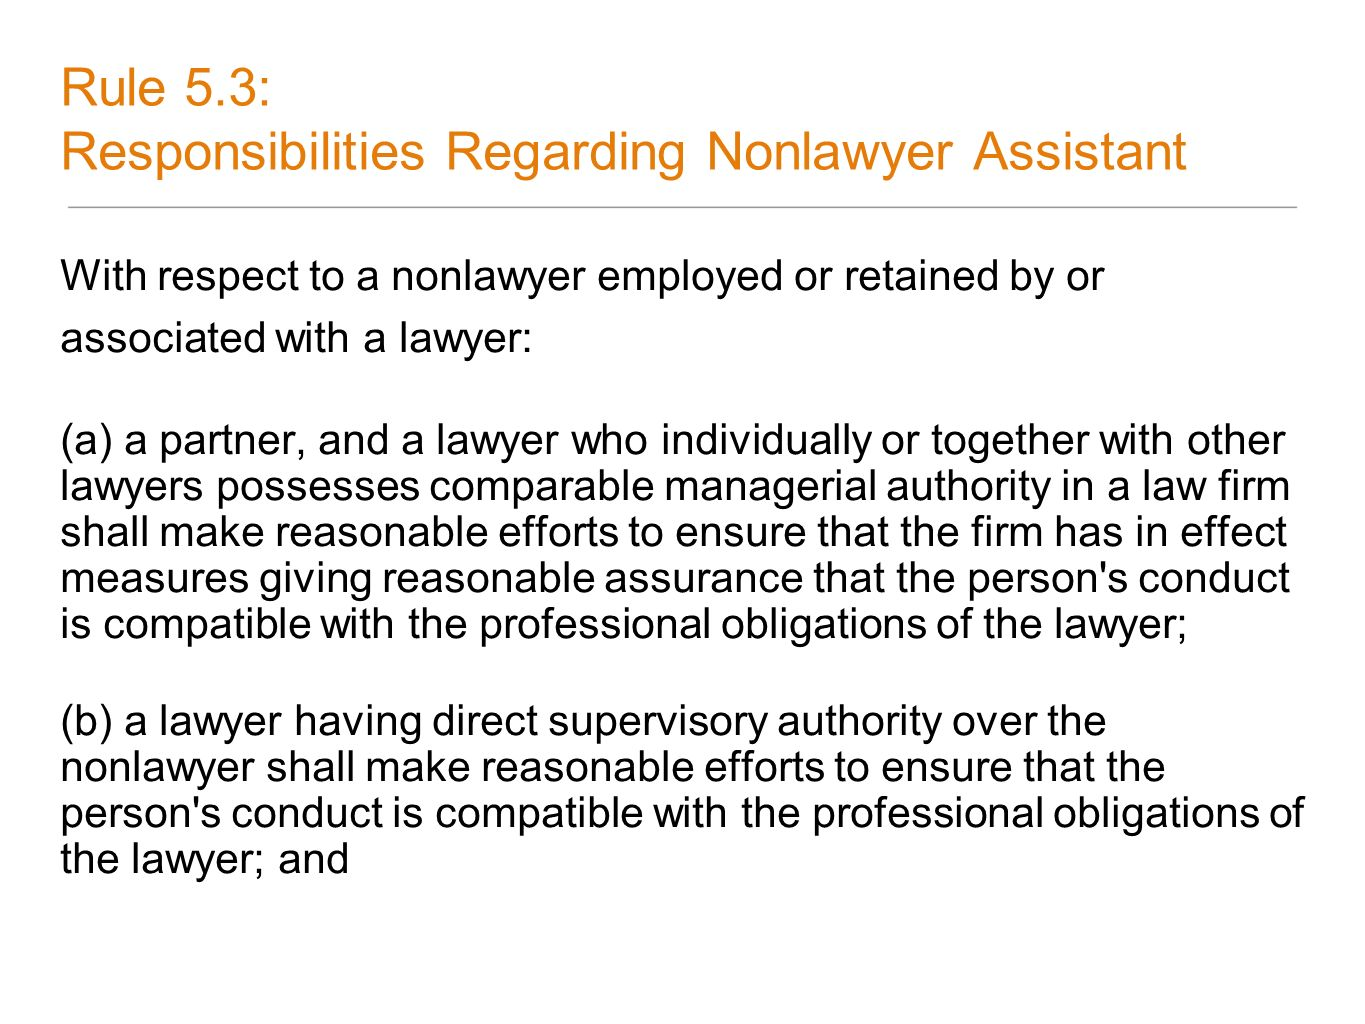 Rule 5.3: Responsibilities Regarding Nonlawyer Assistant With respect to a nonlawyer employed or retained by or associated with a lawyer: (a) a partne